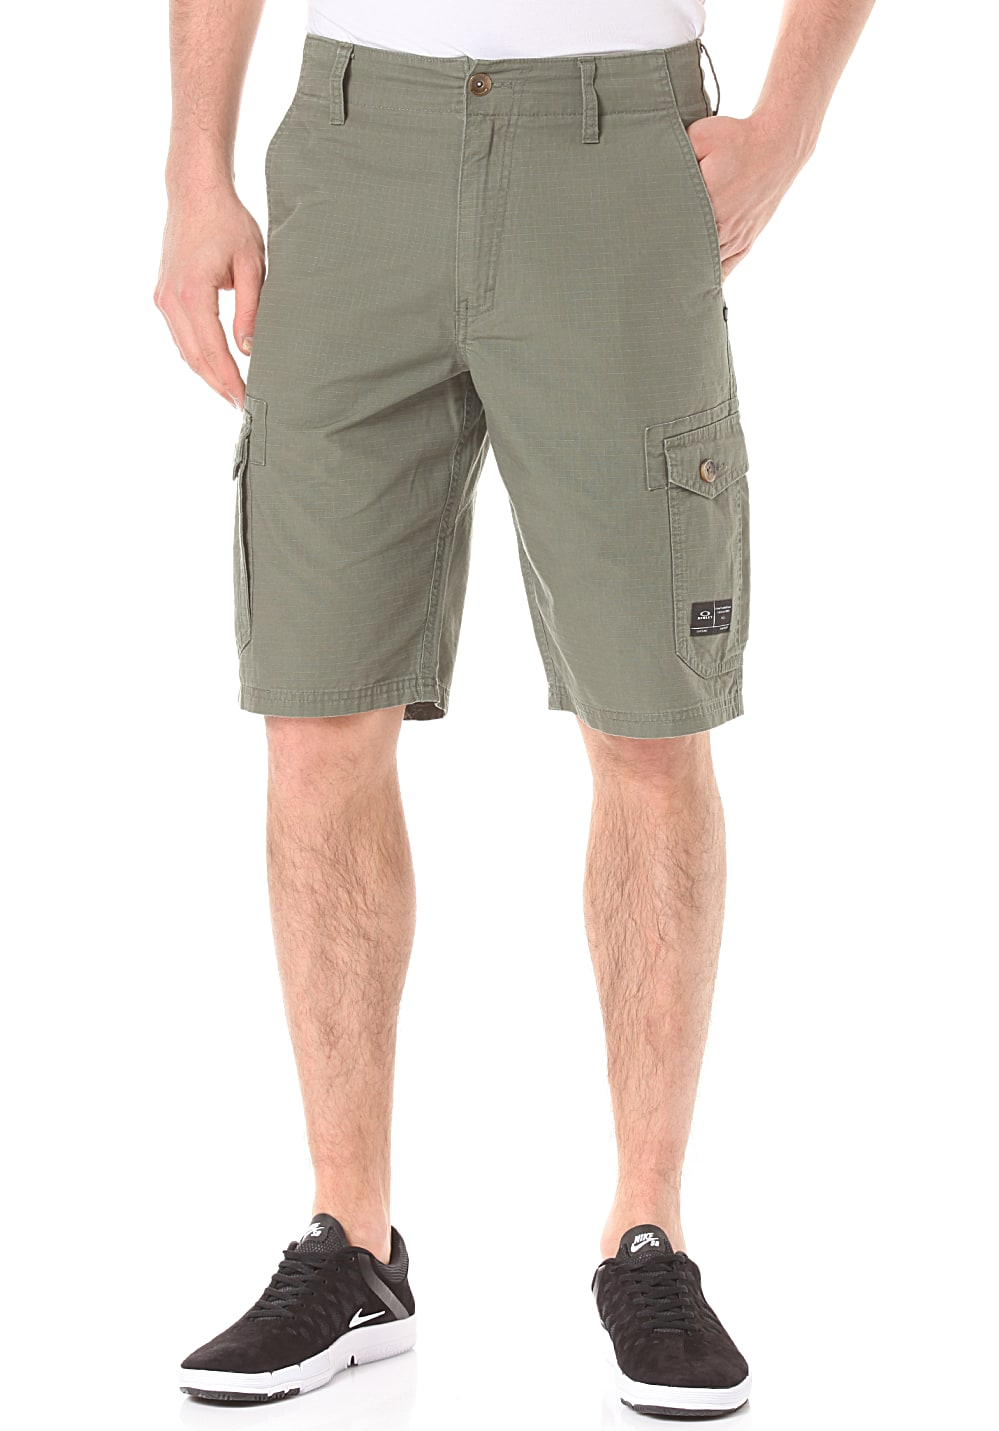 oakley foundation cargo cargo shorts f r herren gr n planet sports. Black Bedroom Furniture Sets. Home Design Ideas